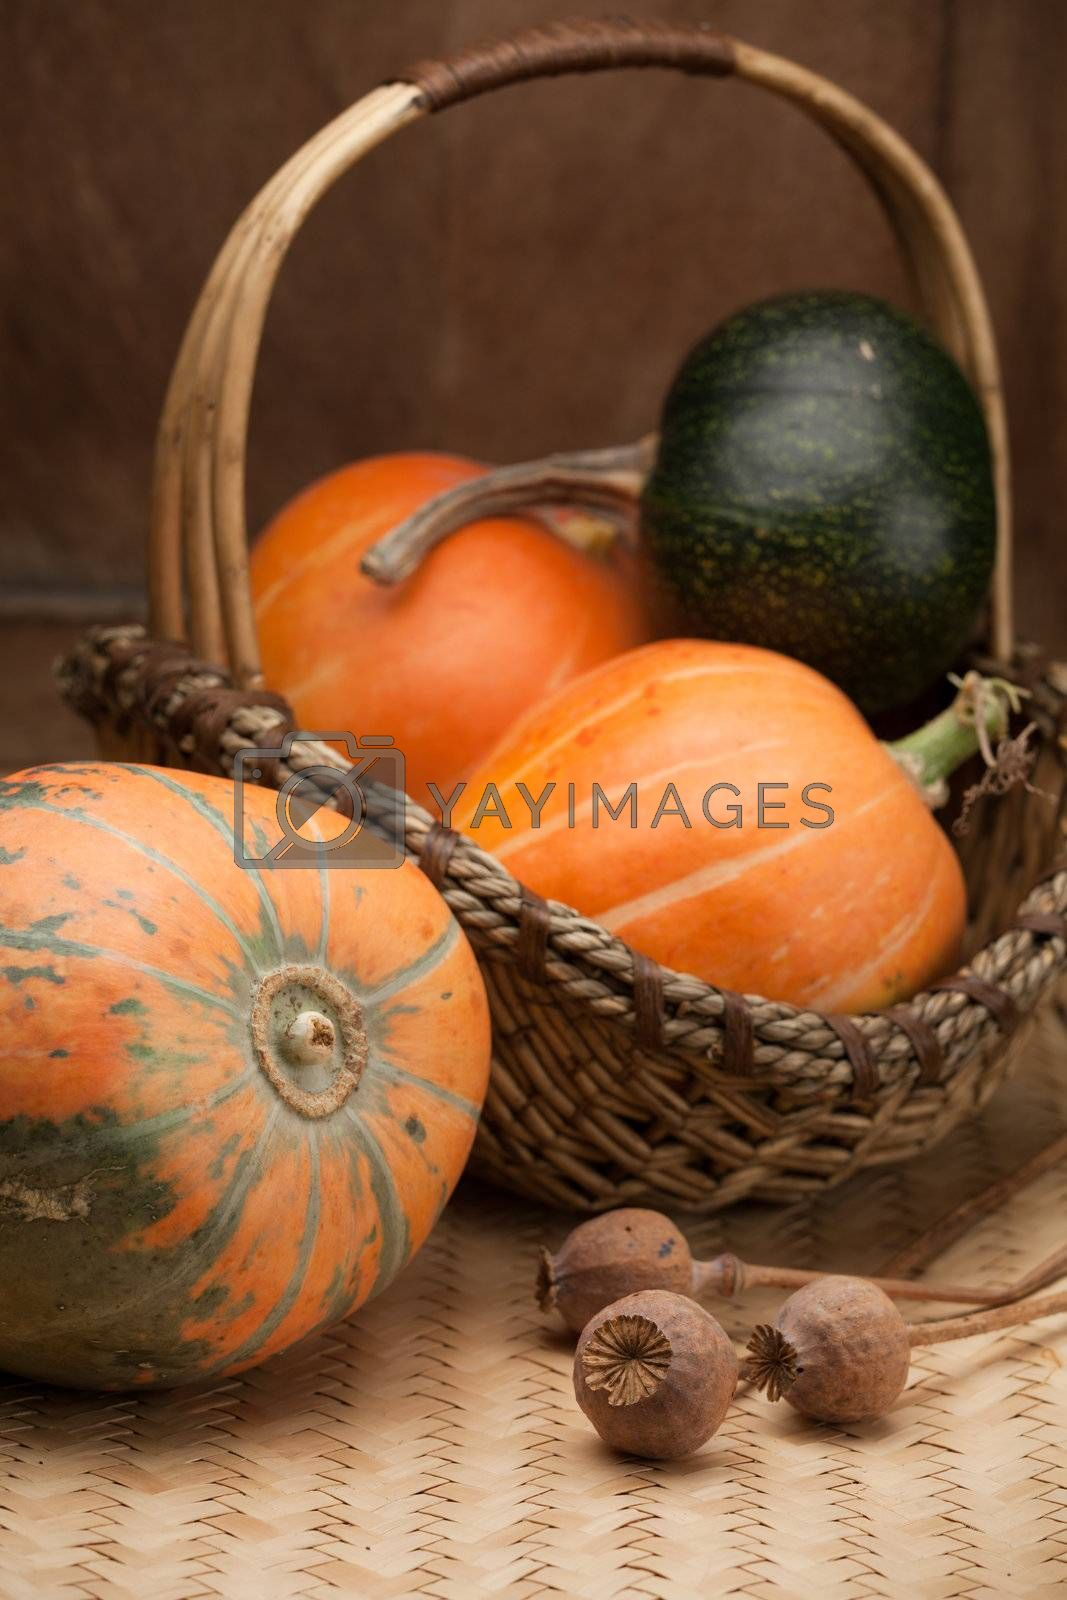 Ripe orange pumpkins in rural woven basket and poppy heads on wooden table